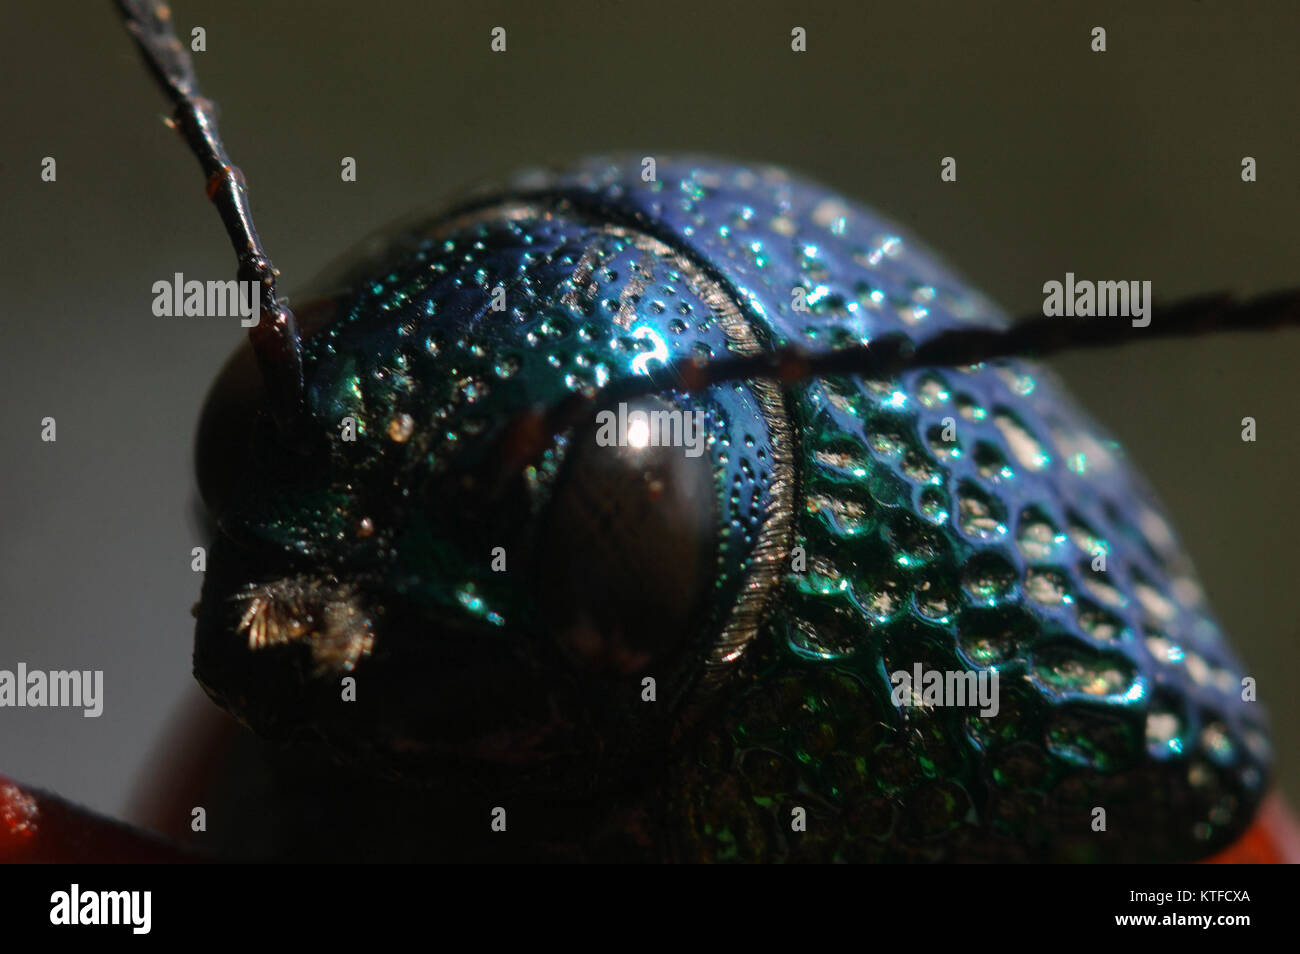 Portrait of a jewel beetle from family Buprestidae, possibly Sternocera nitens or S. Brahmina, from Tamil Nadu, - Stock Image